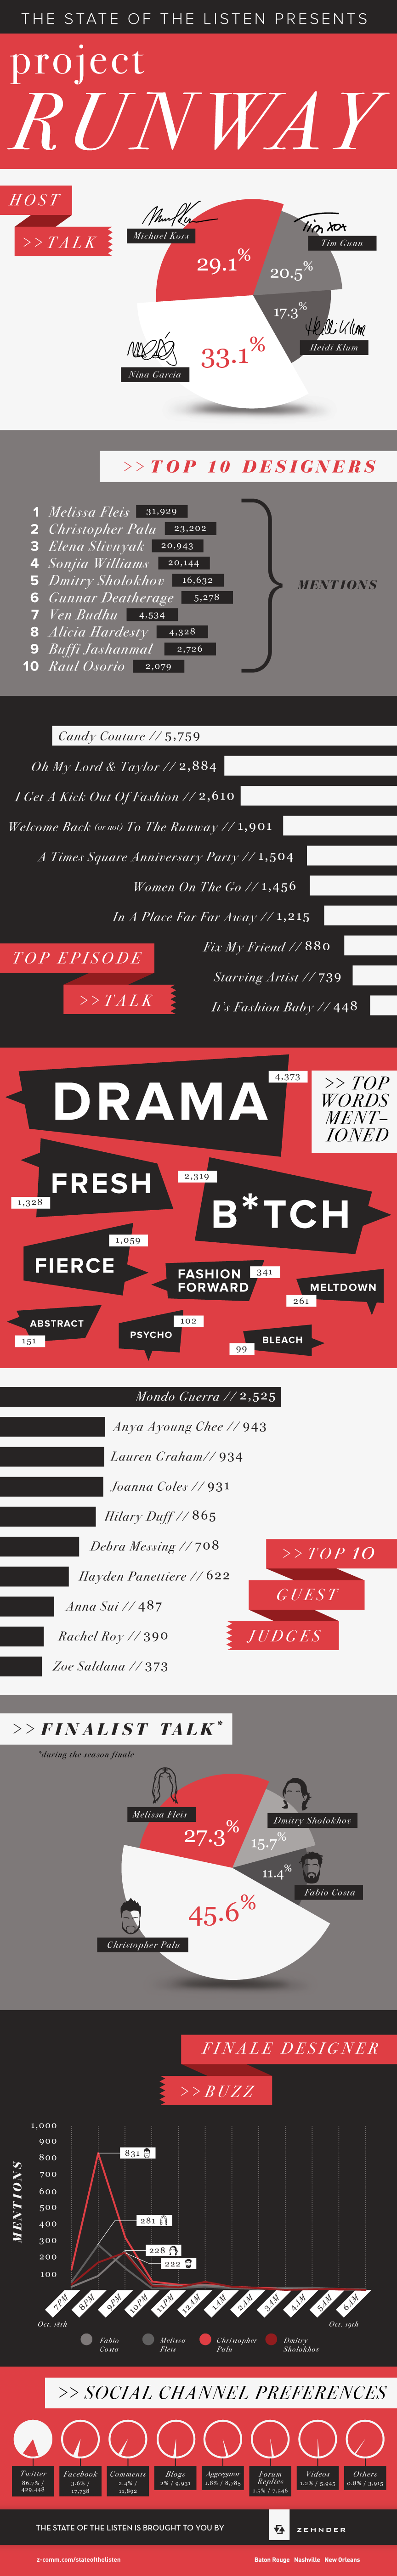 Project Runway Infographic